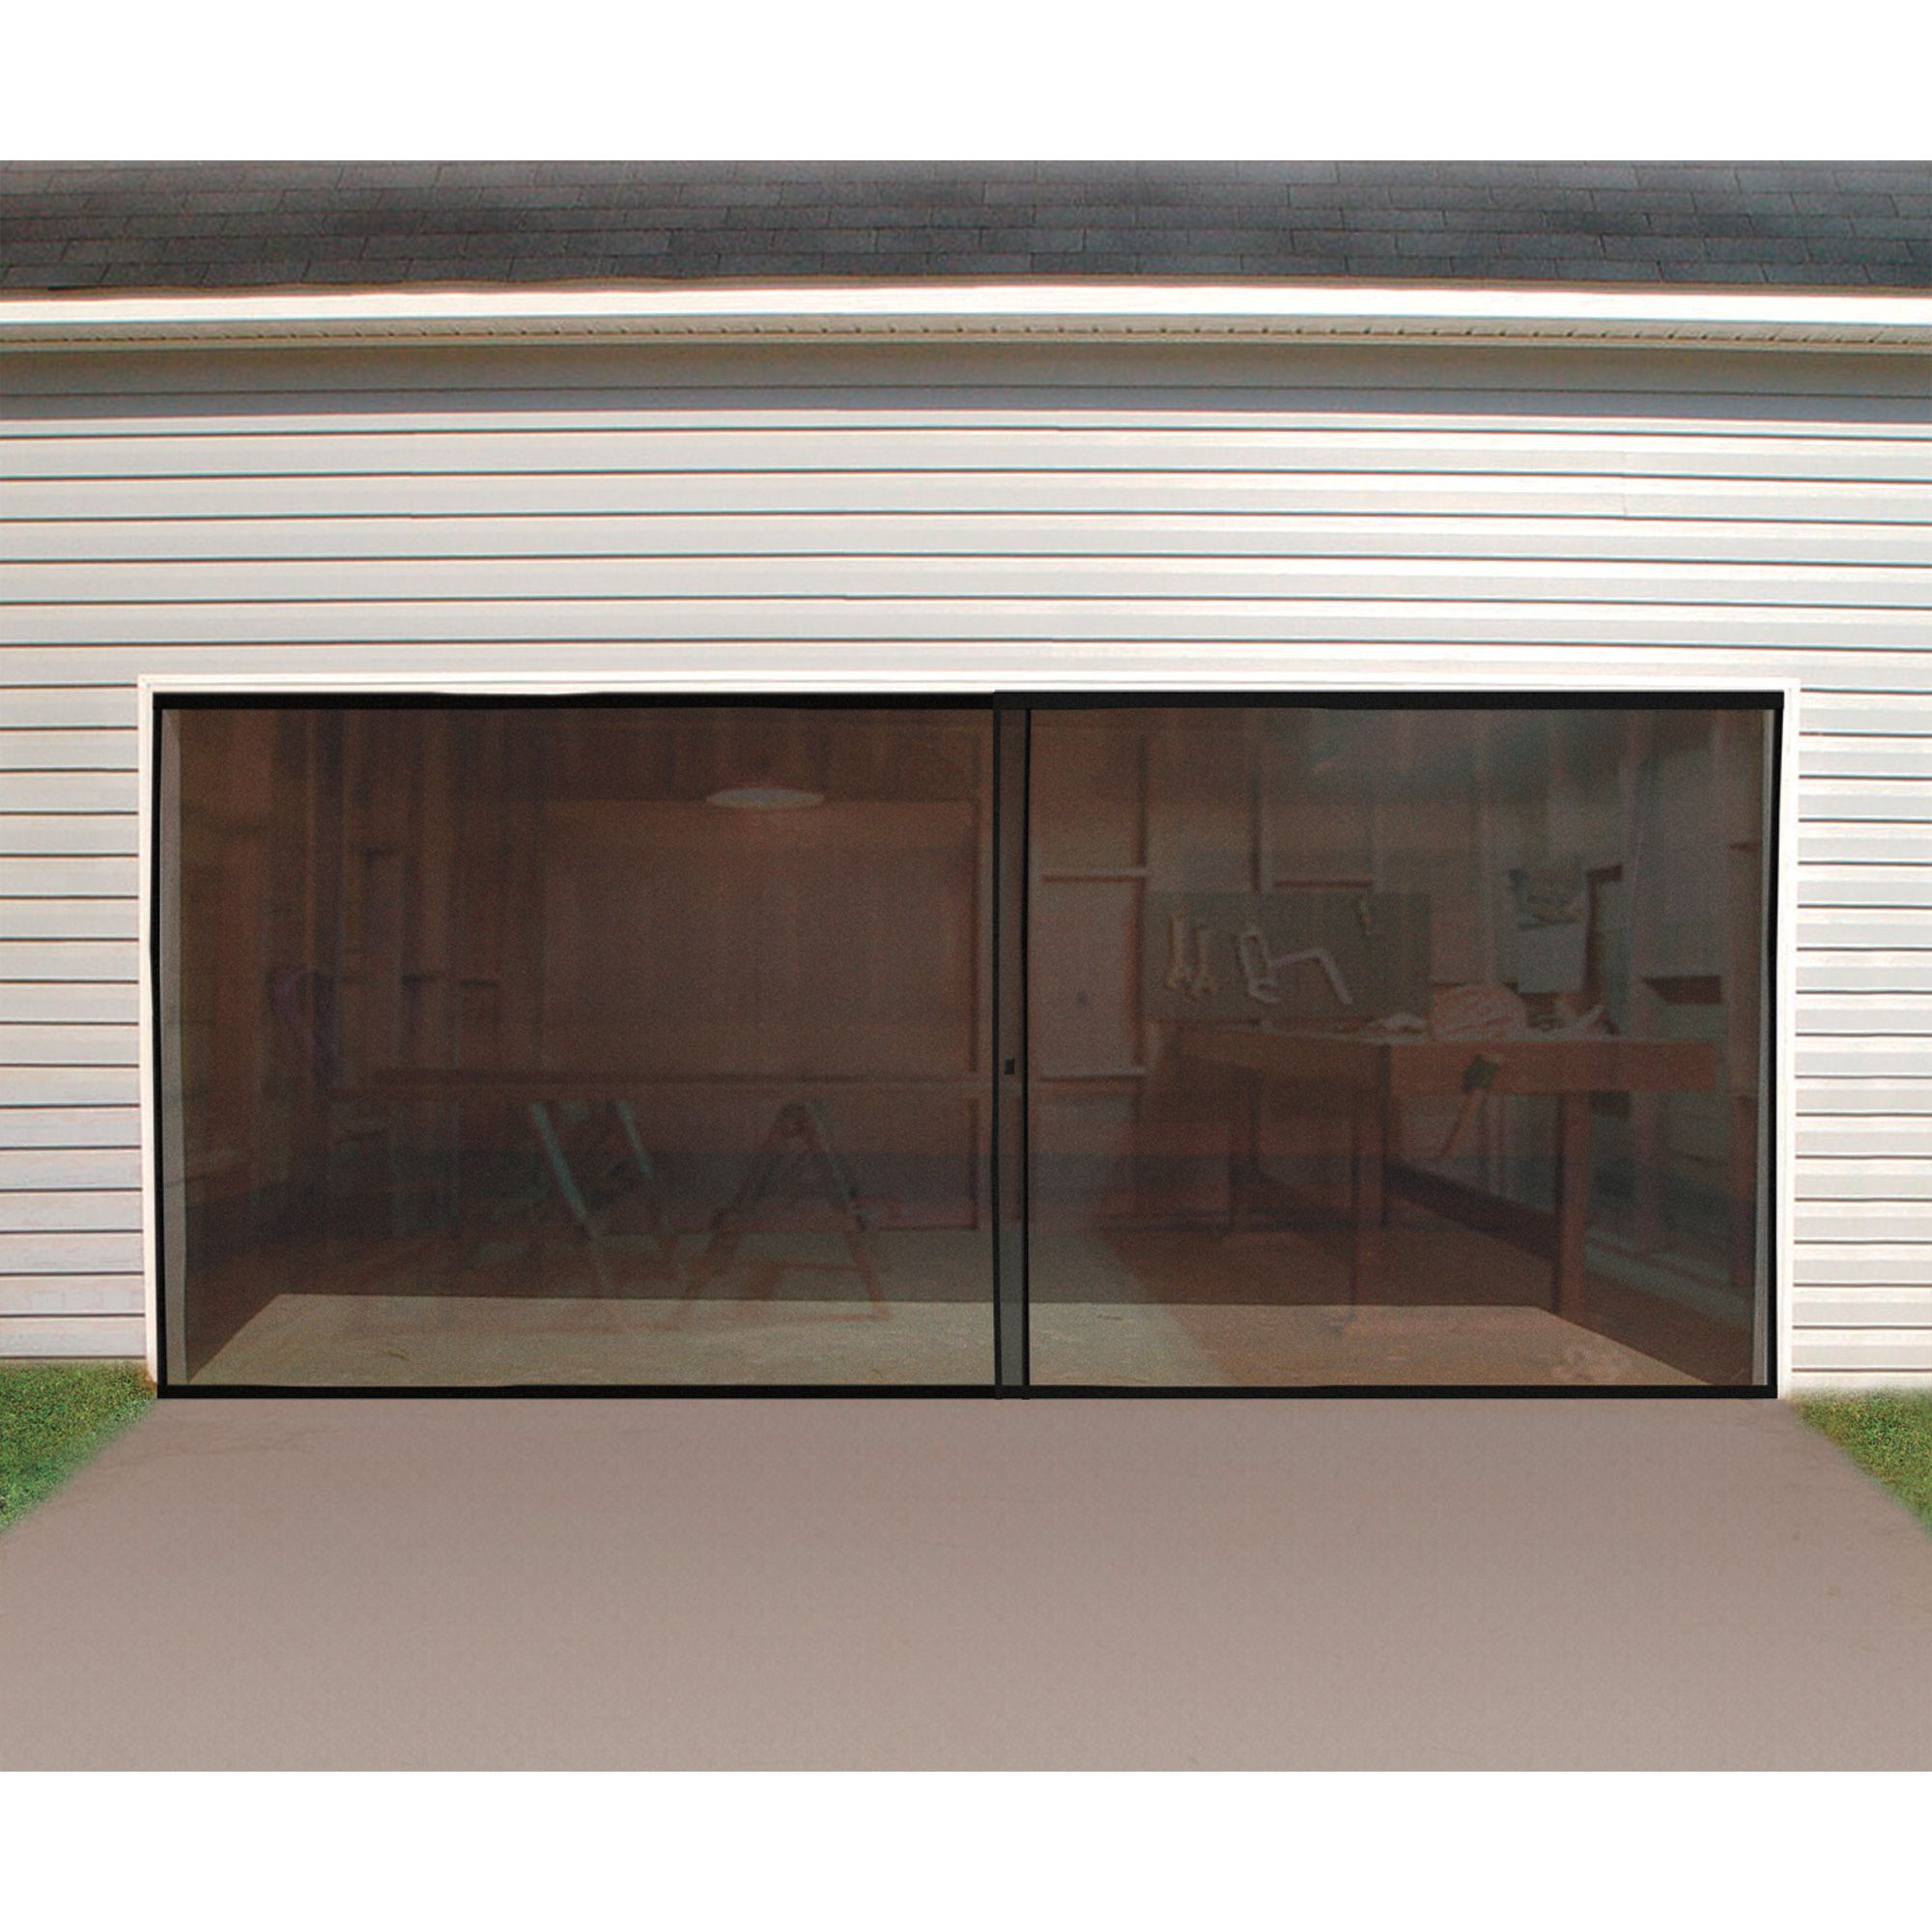 Double Garage Door Keeps The Bugs Out Of Your Garage Www Kotulas Com Free Shipping 29 Garage Decor Garage Door Design Garage Screen Door